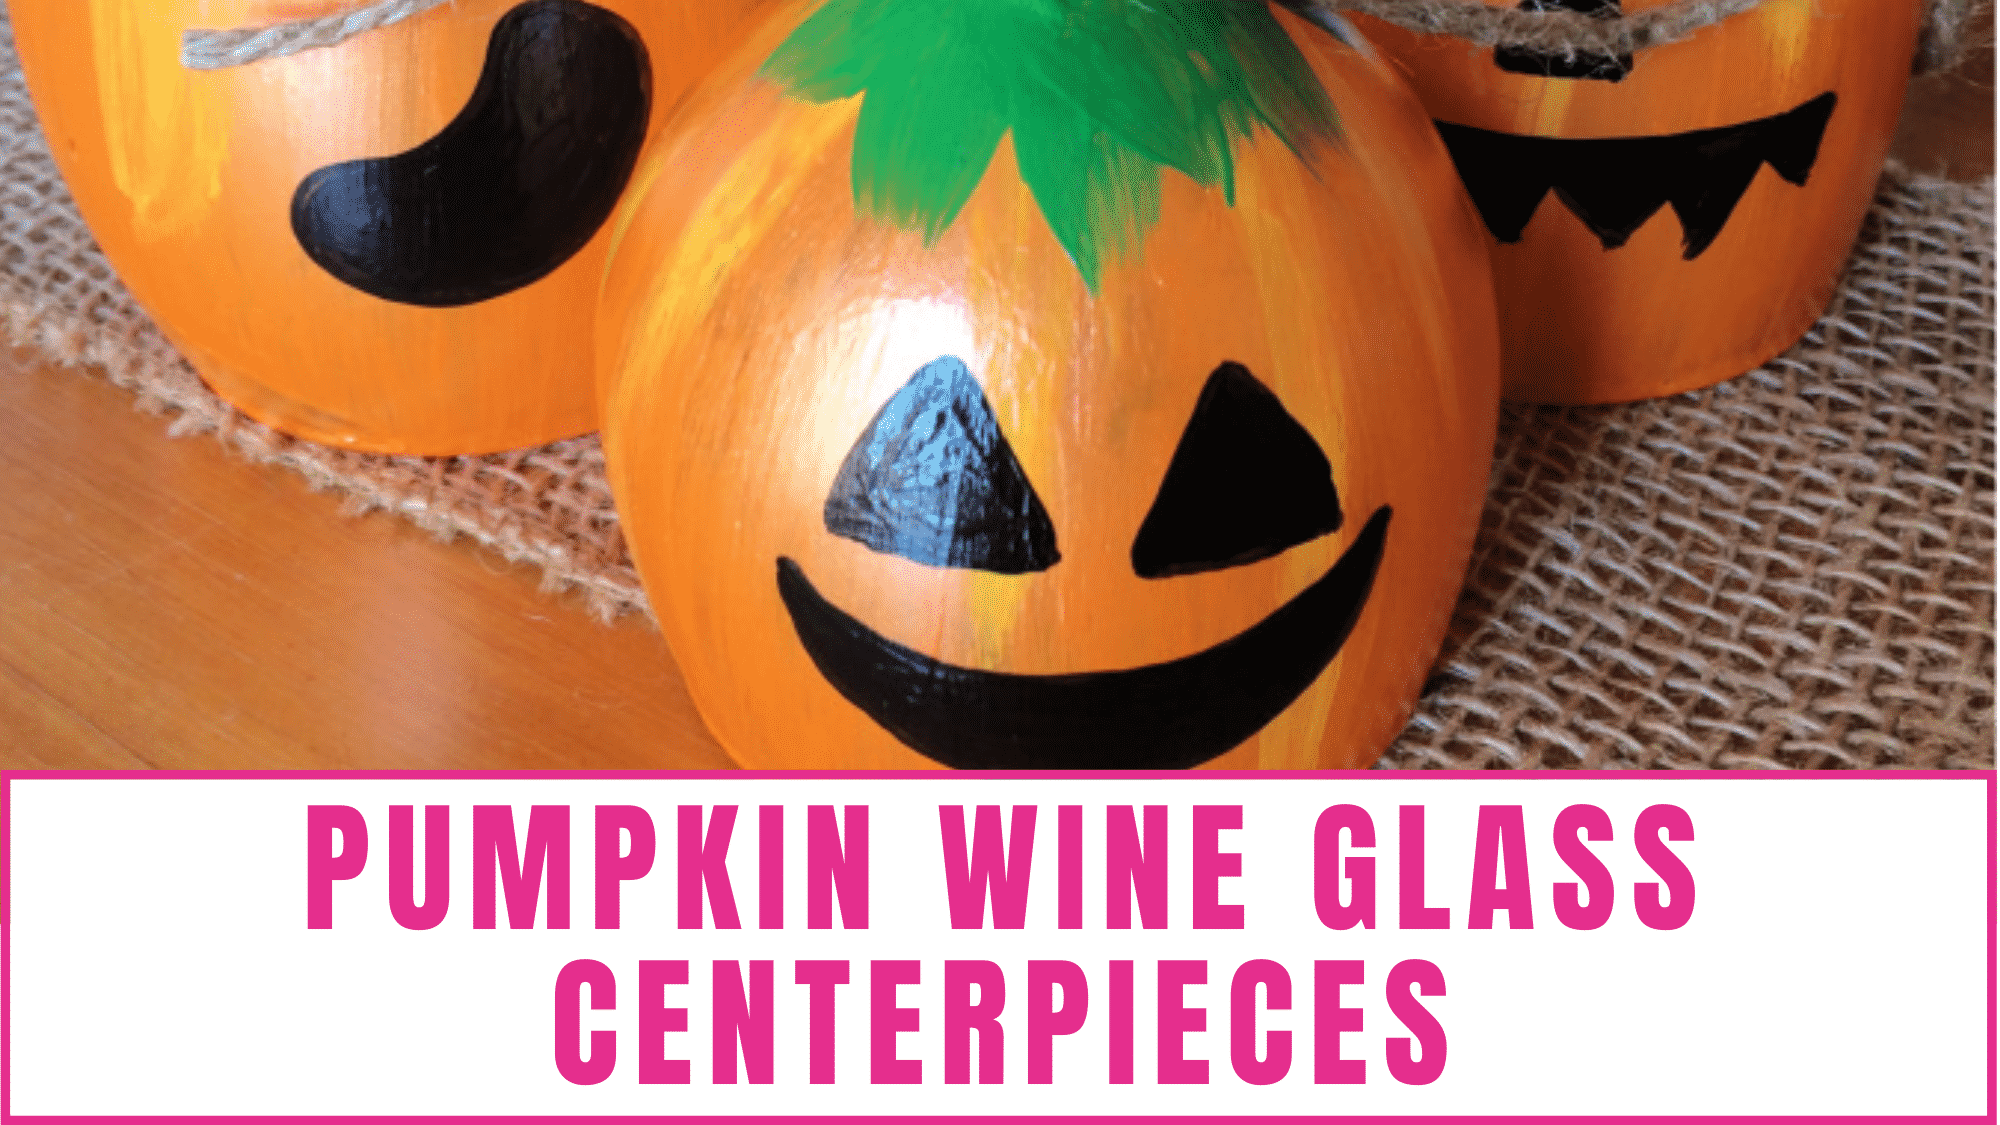 These cute pumpkin wine glass centerpieces can make any table Halloween-ready without breaking your budget.